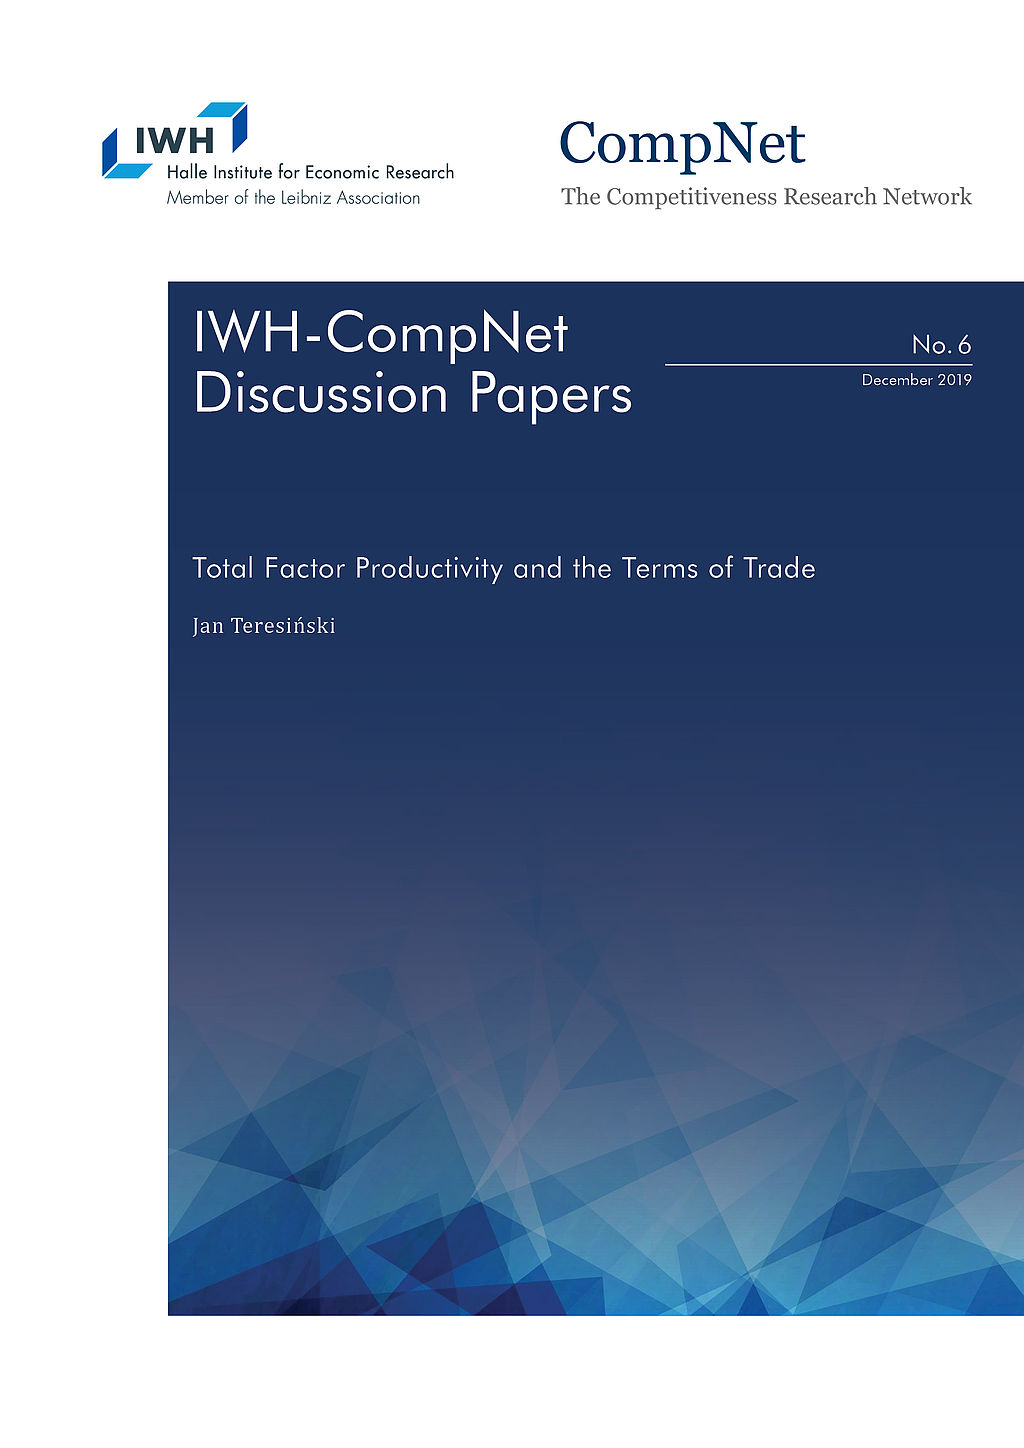 cover_IWH-CompNet-DP_06_2019.jpg